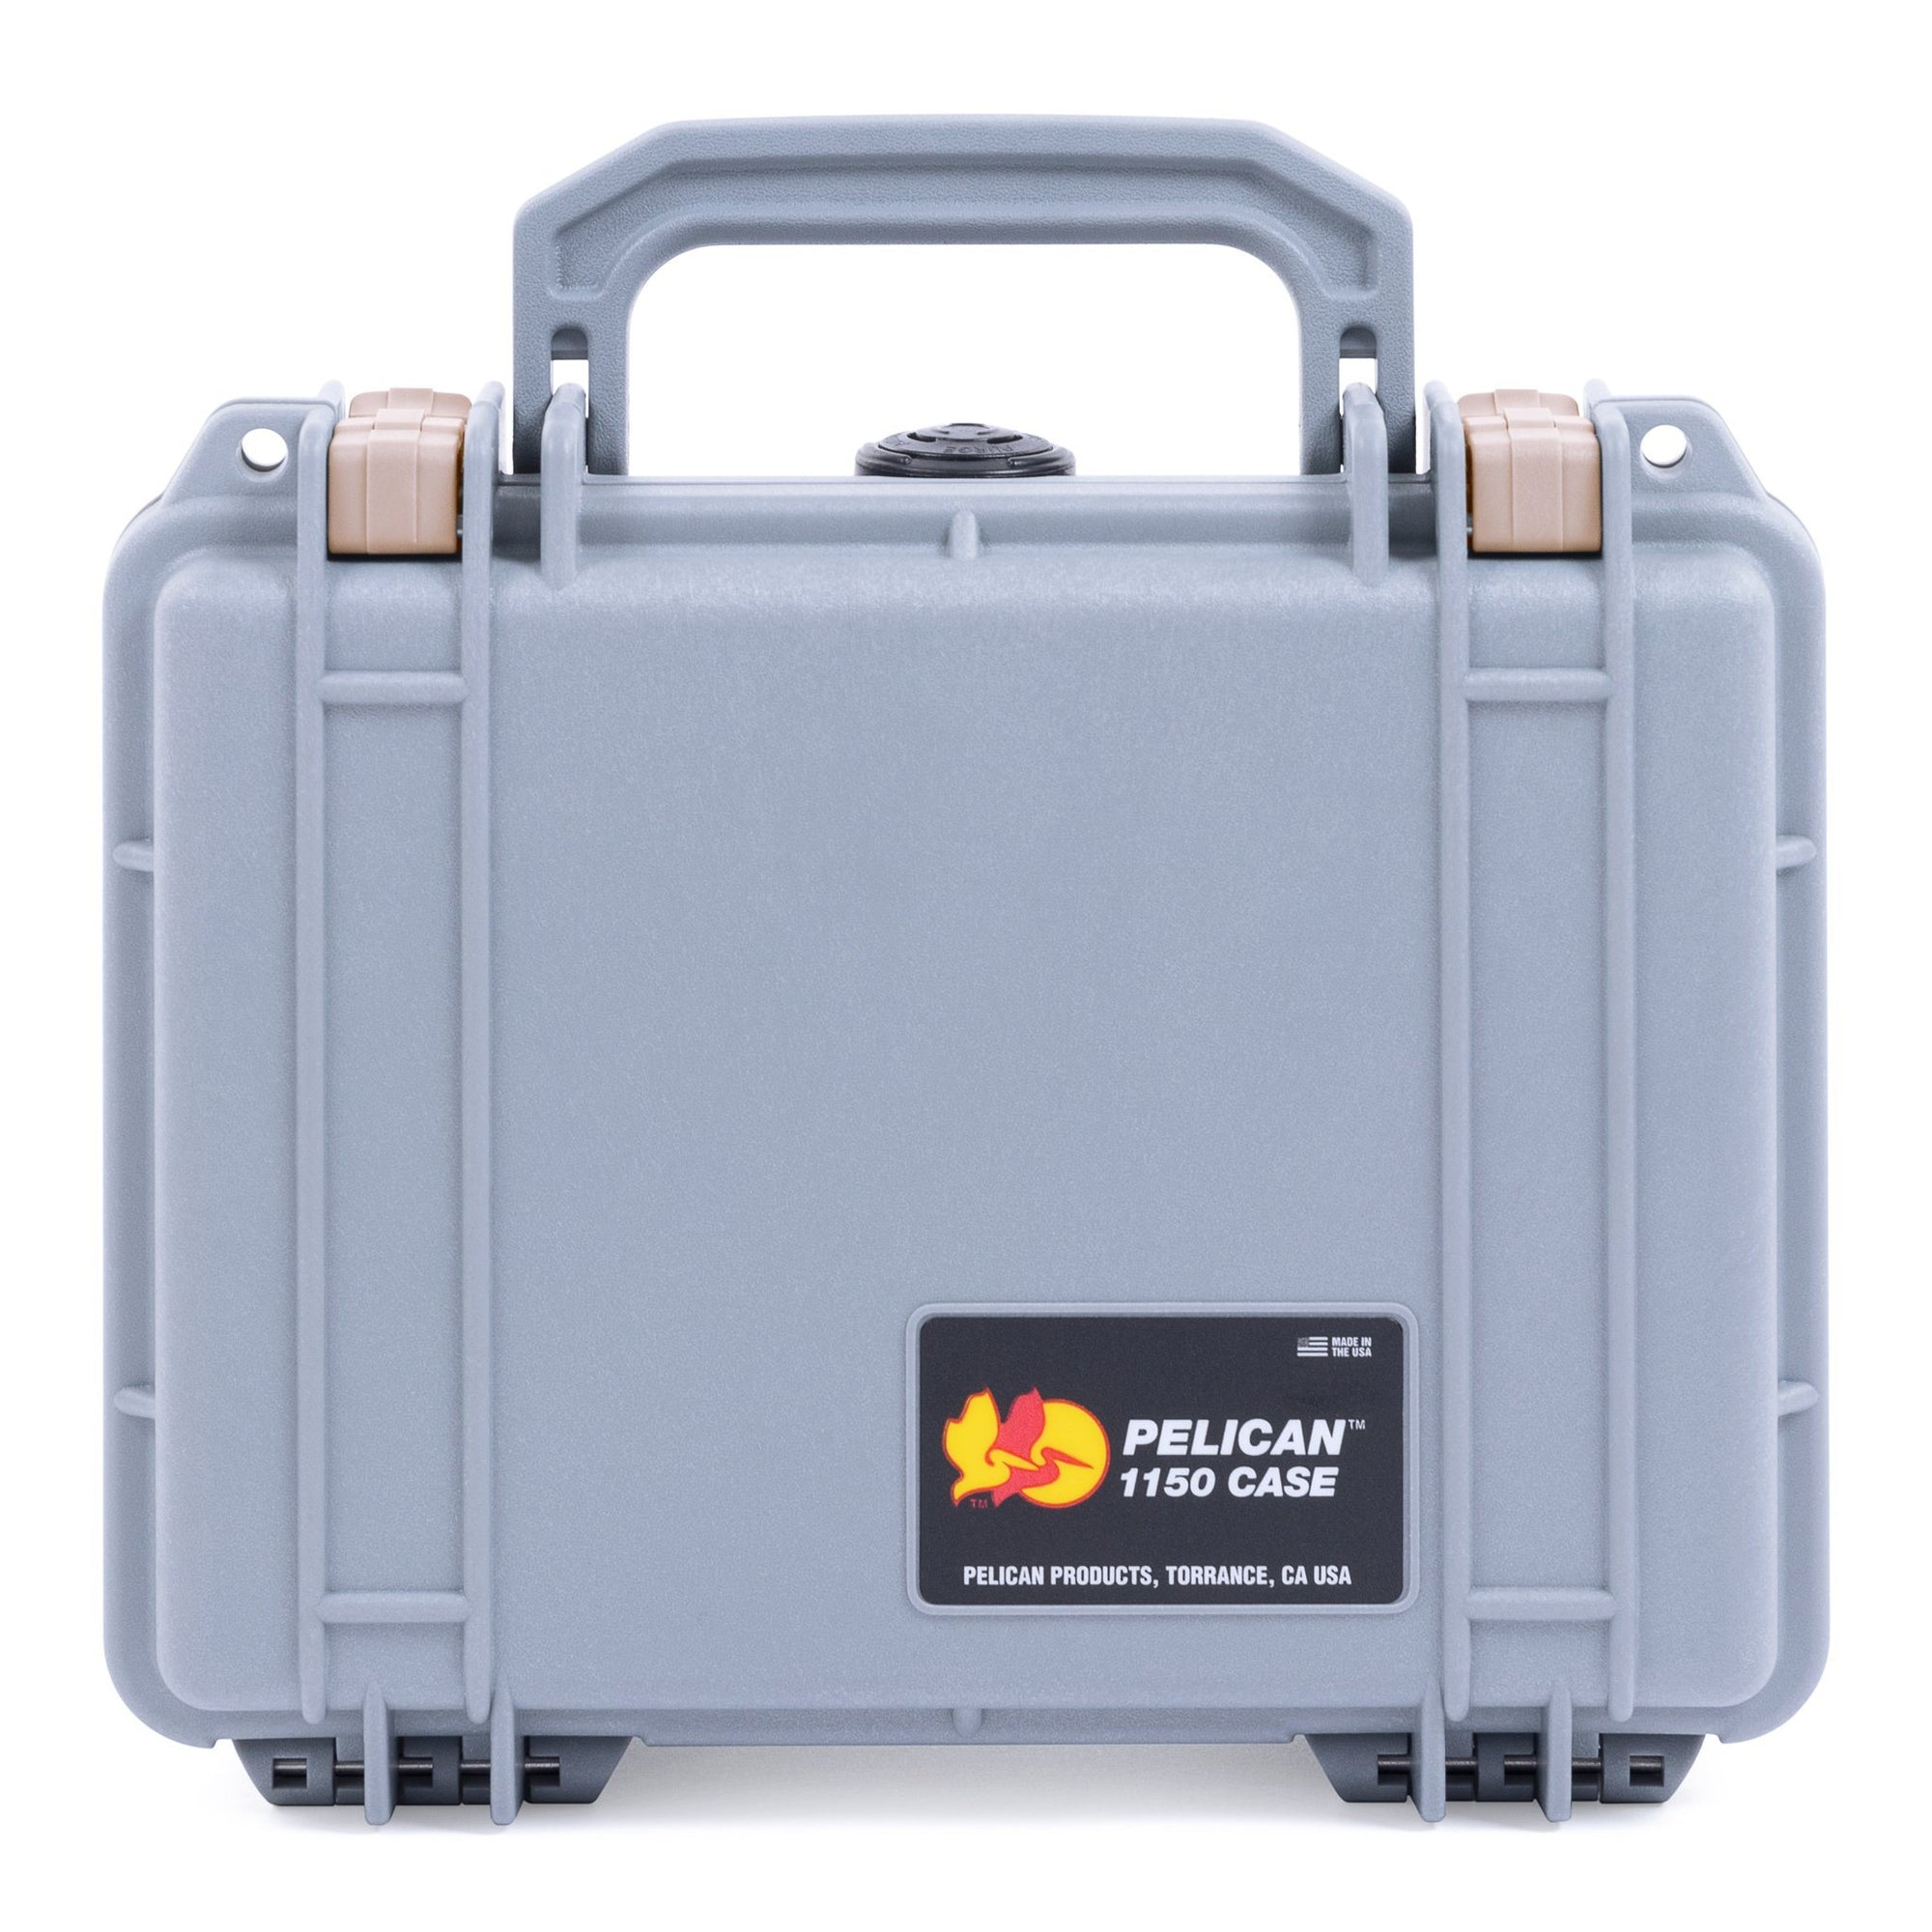 Pelican 1150 Case, Silver with Desert Tan Latches - Pelican Color Case